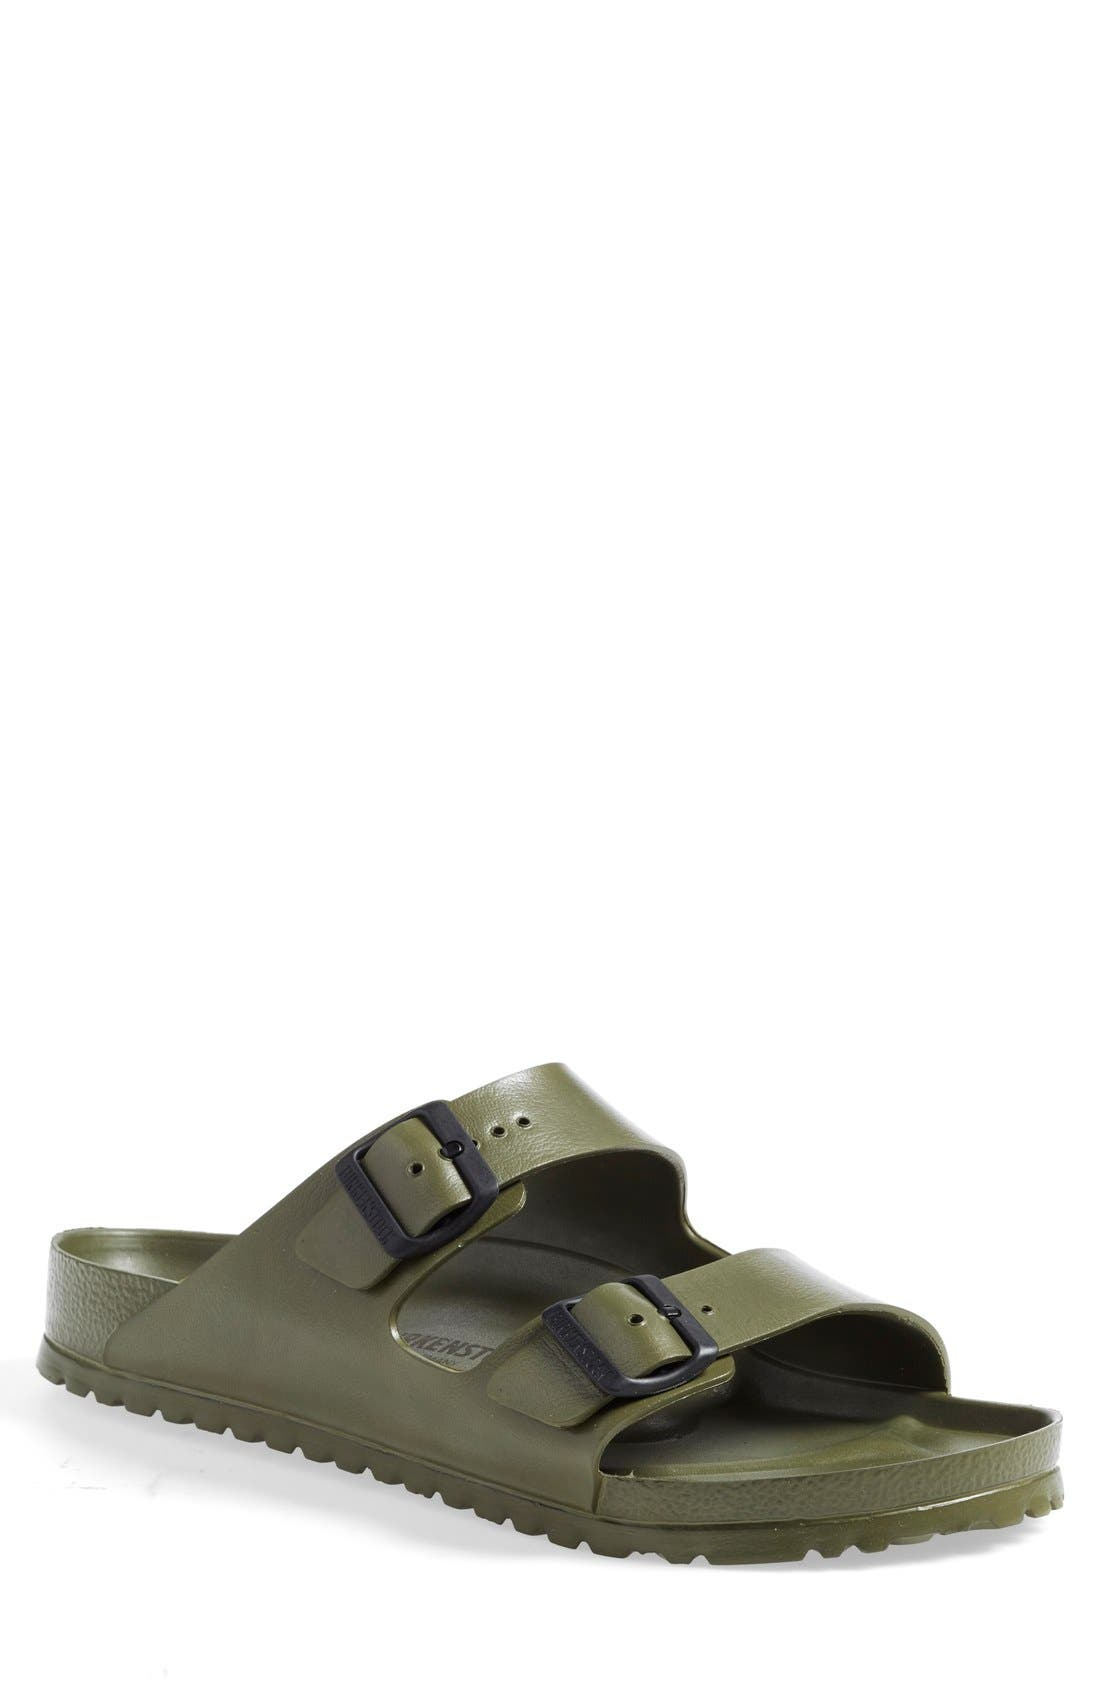 Alternate Image 1 Selected - Birkenstock 'Essentials - Arizona EVA' Waterproof Slide Sandal (Men)